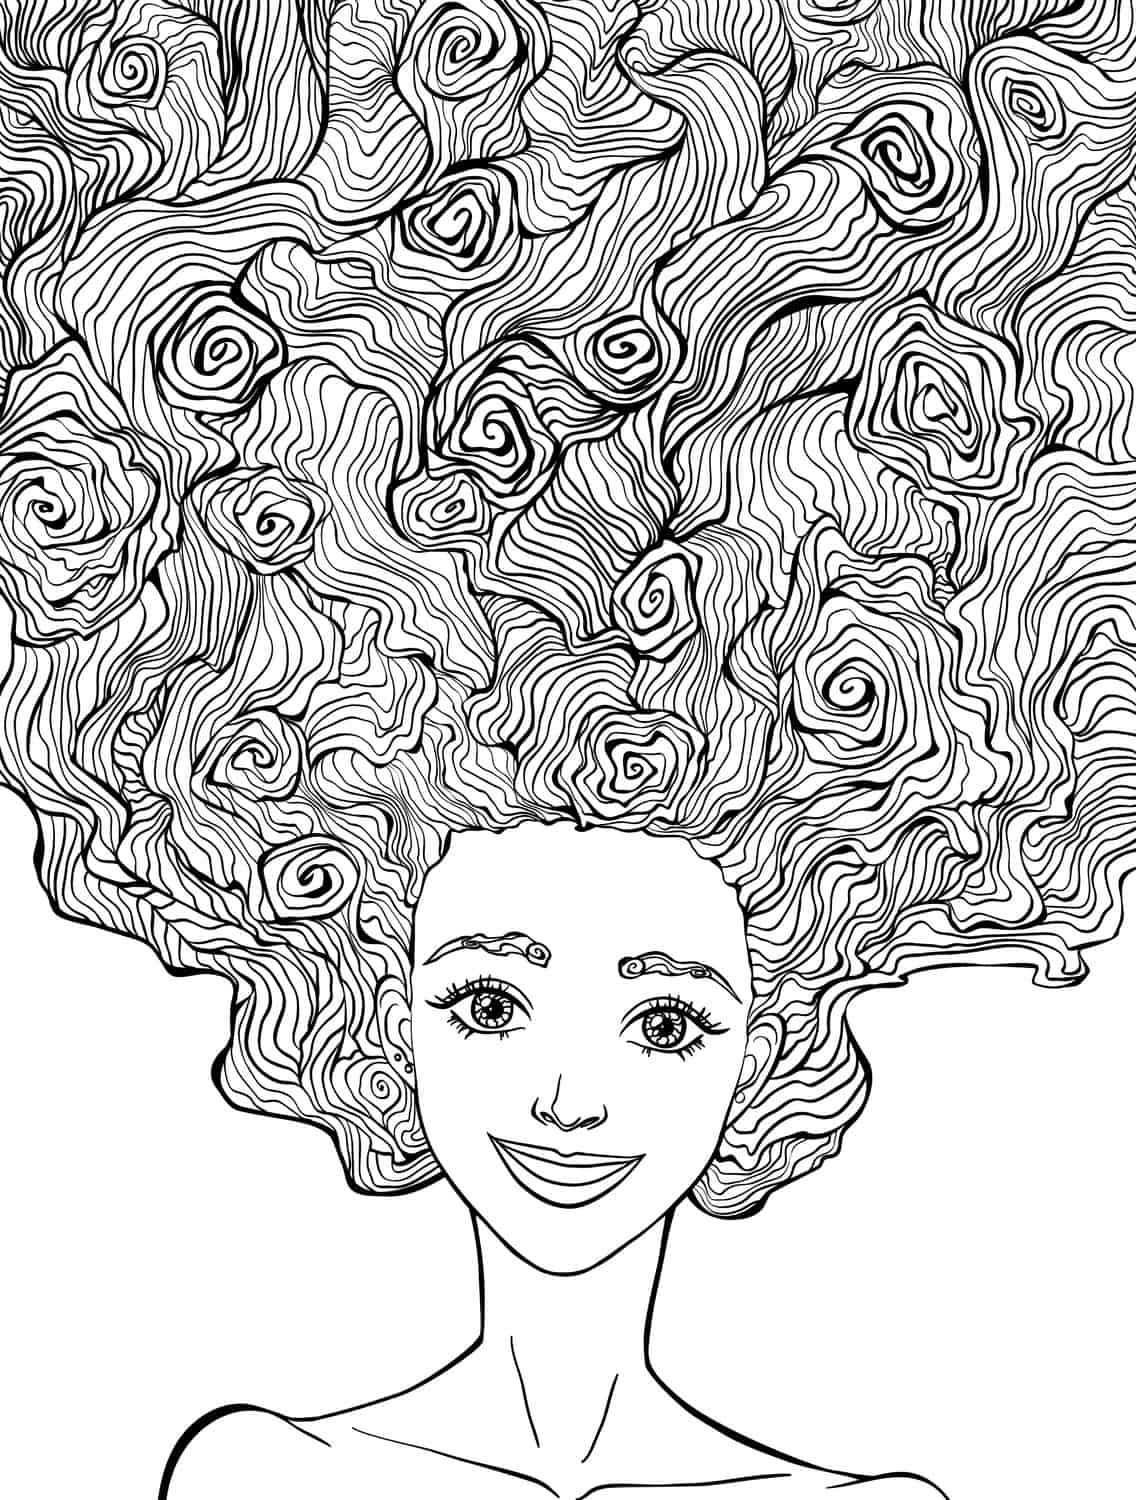 Coloring pages relaxing - Relaxing Coloring Pages For Adults Printable